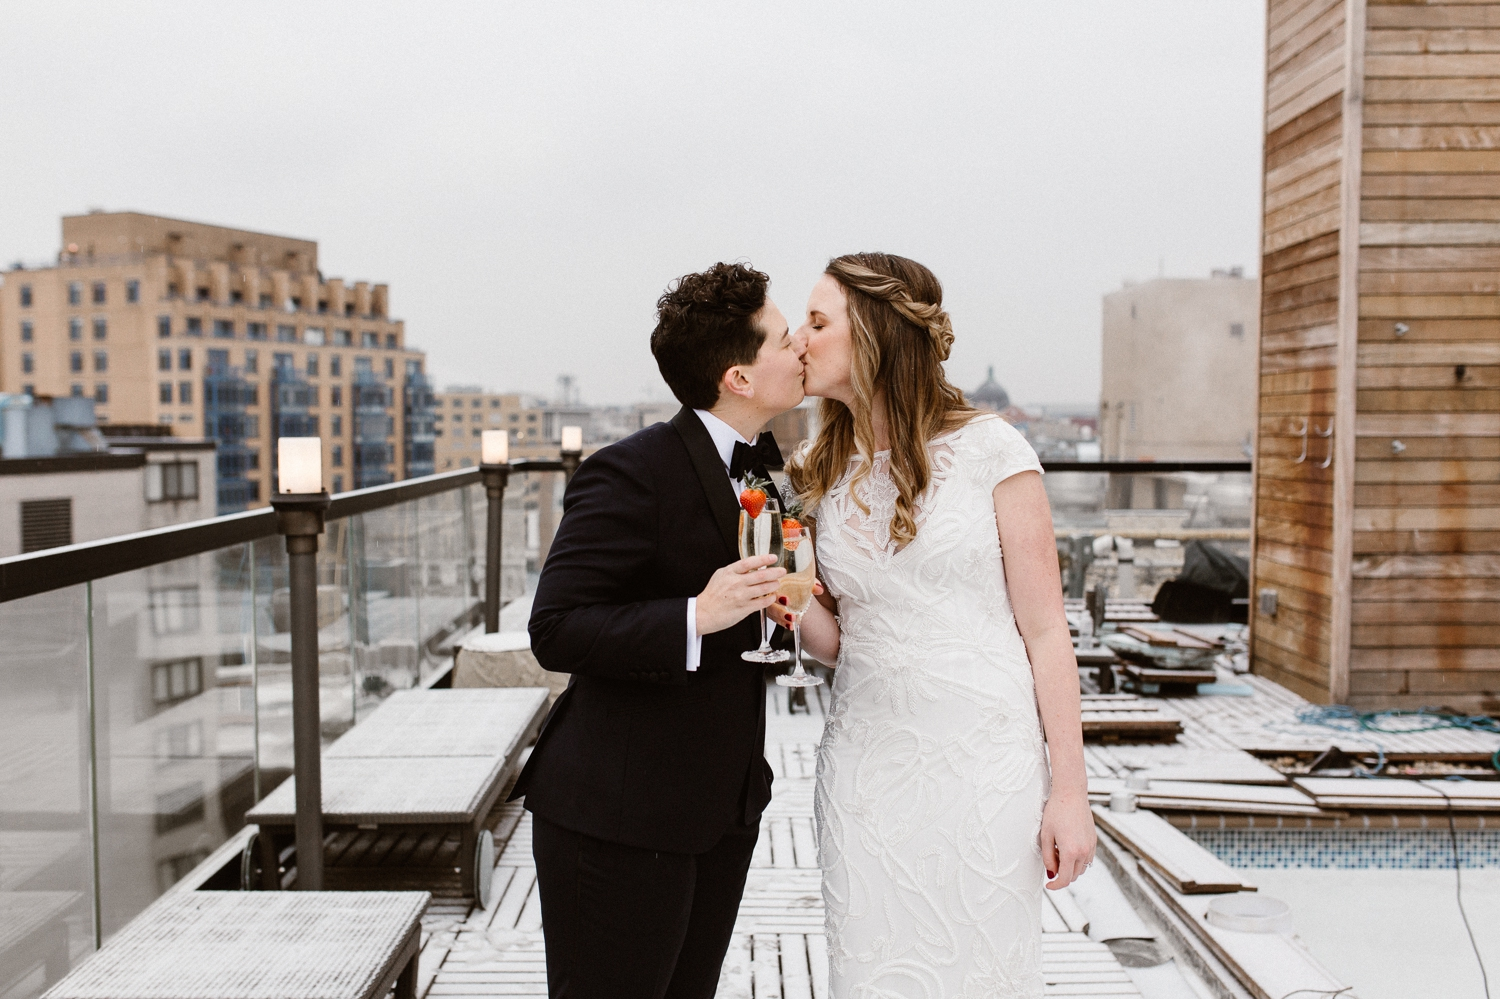 mason-and-rook-first-look-rooftop-josephine-butler-parks-wedding-photographer 63.jpg